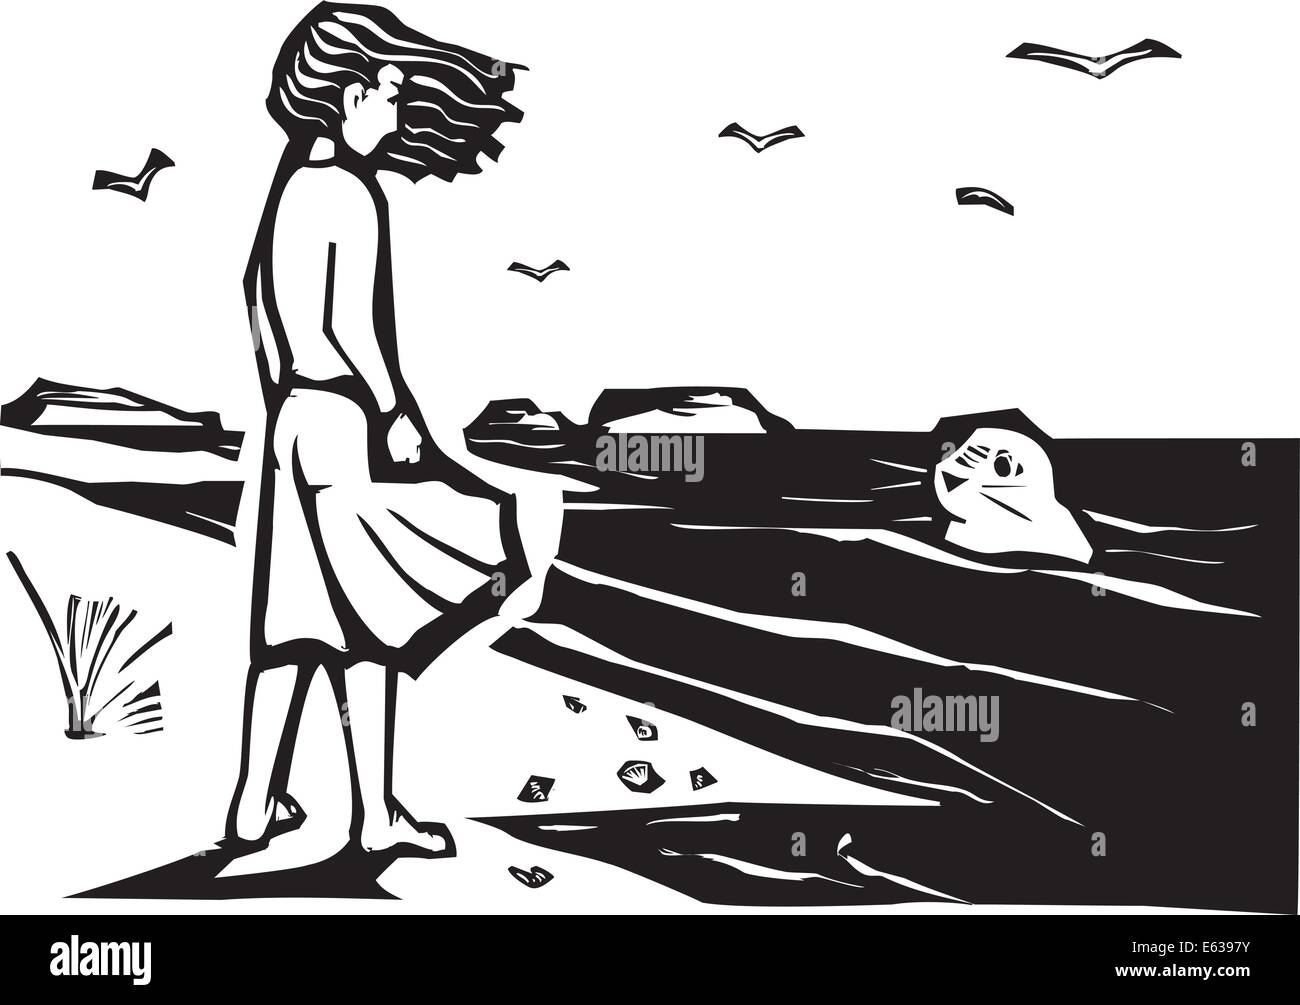 Woodcut style image of a girl on a beach watching a harbor seal in the waves. Stock-Vektorgrafik